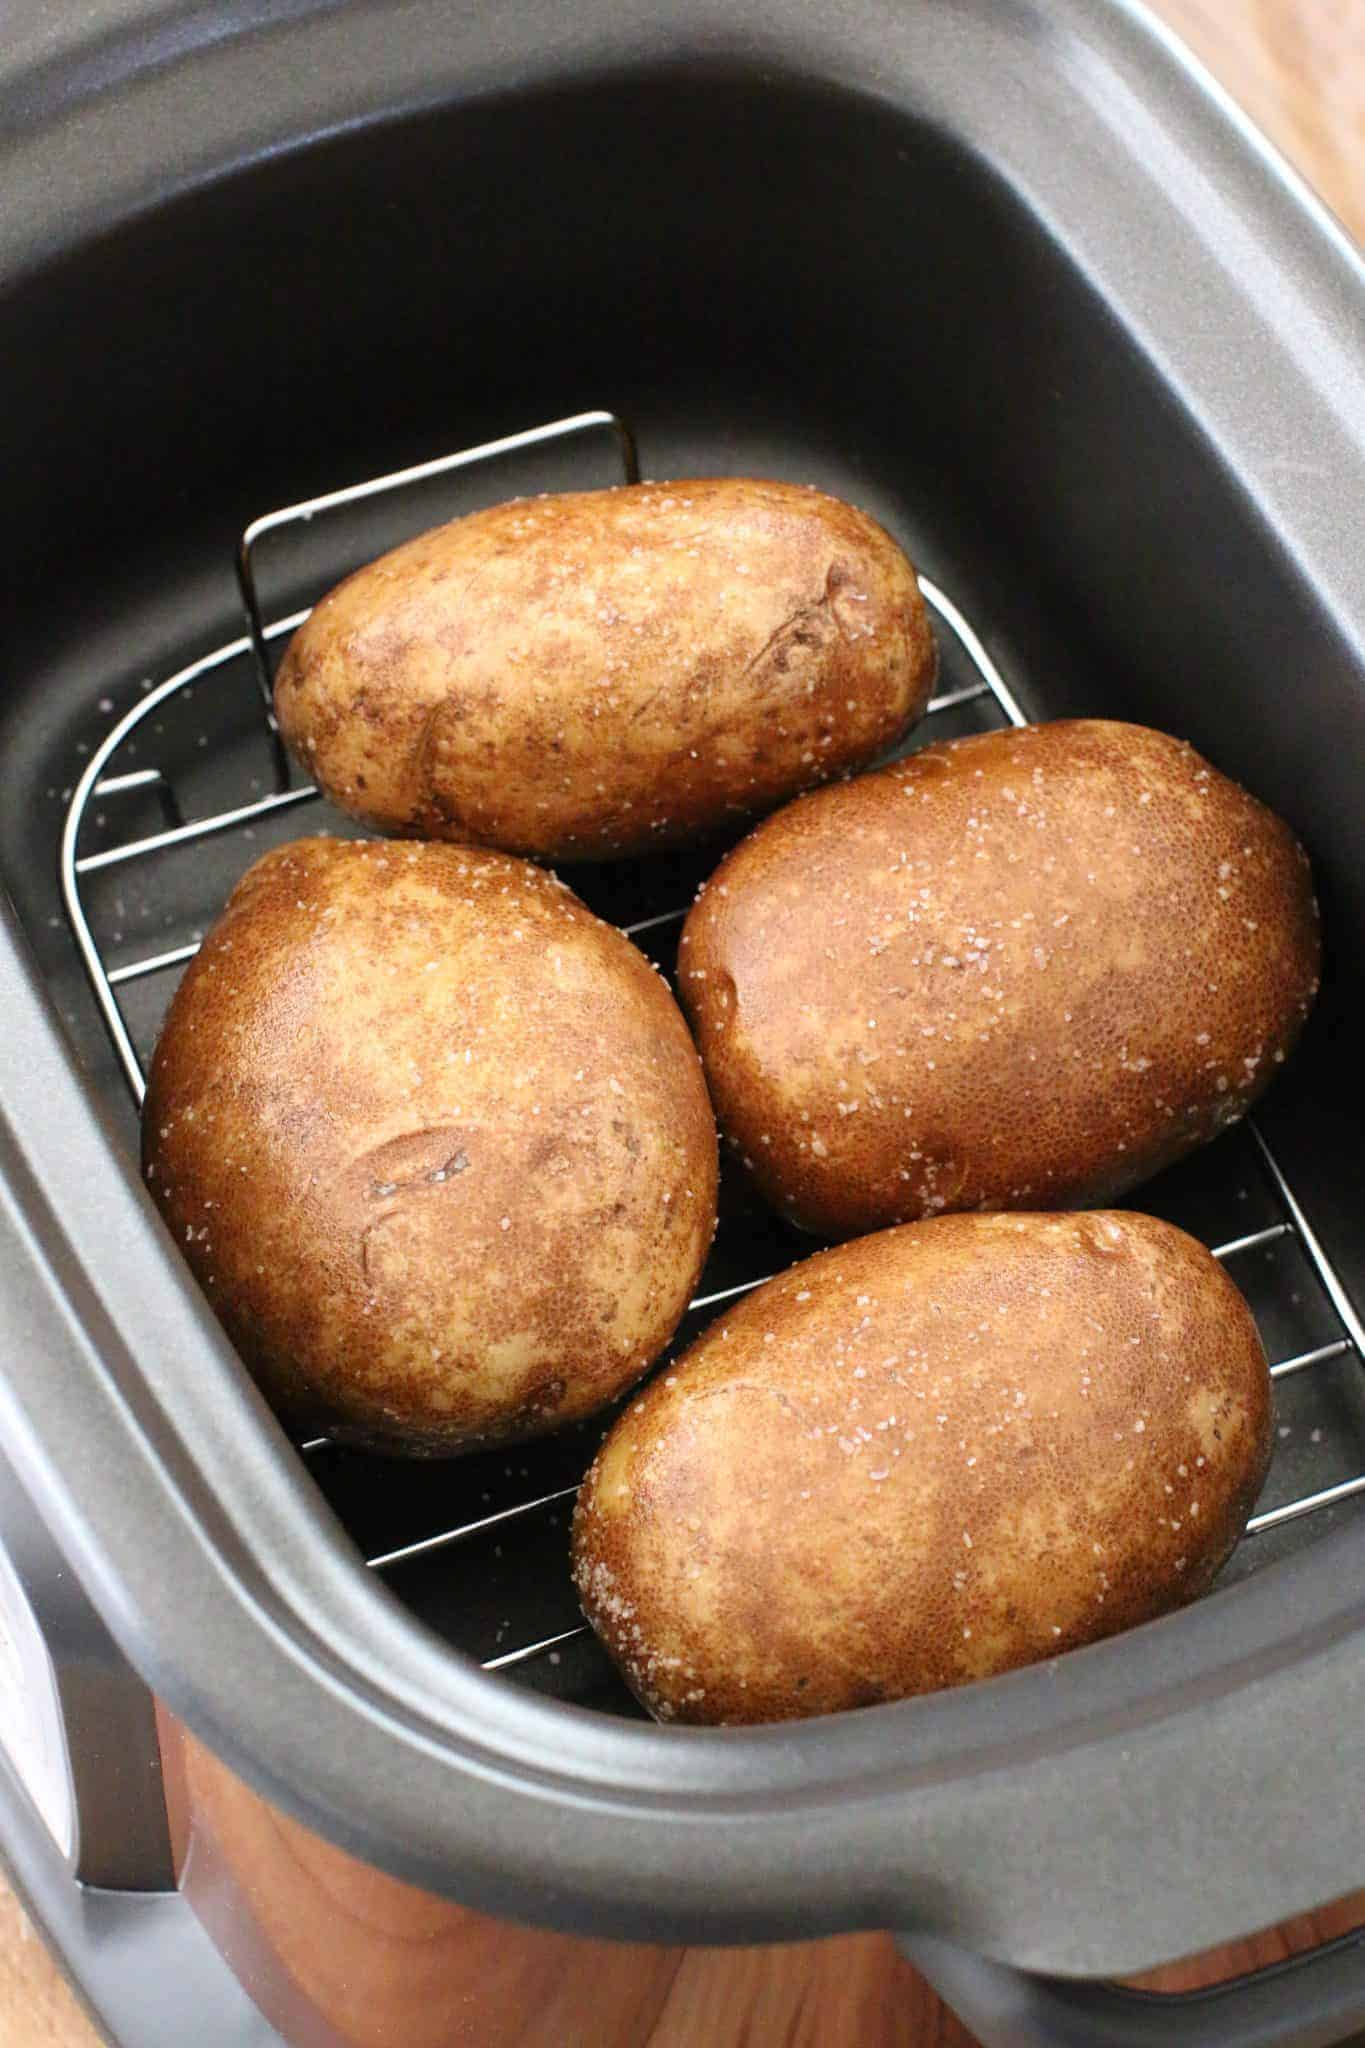 four large russet potatoes in the bottom of a 6-quart oval crock pot.